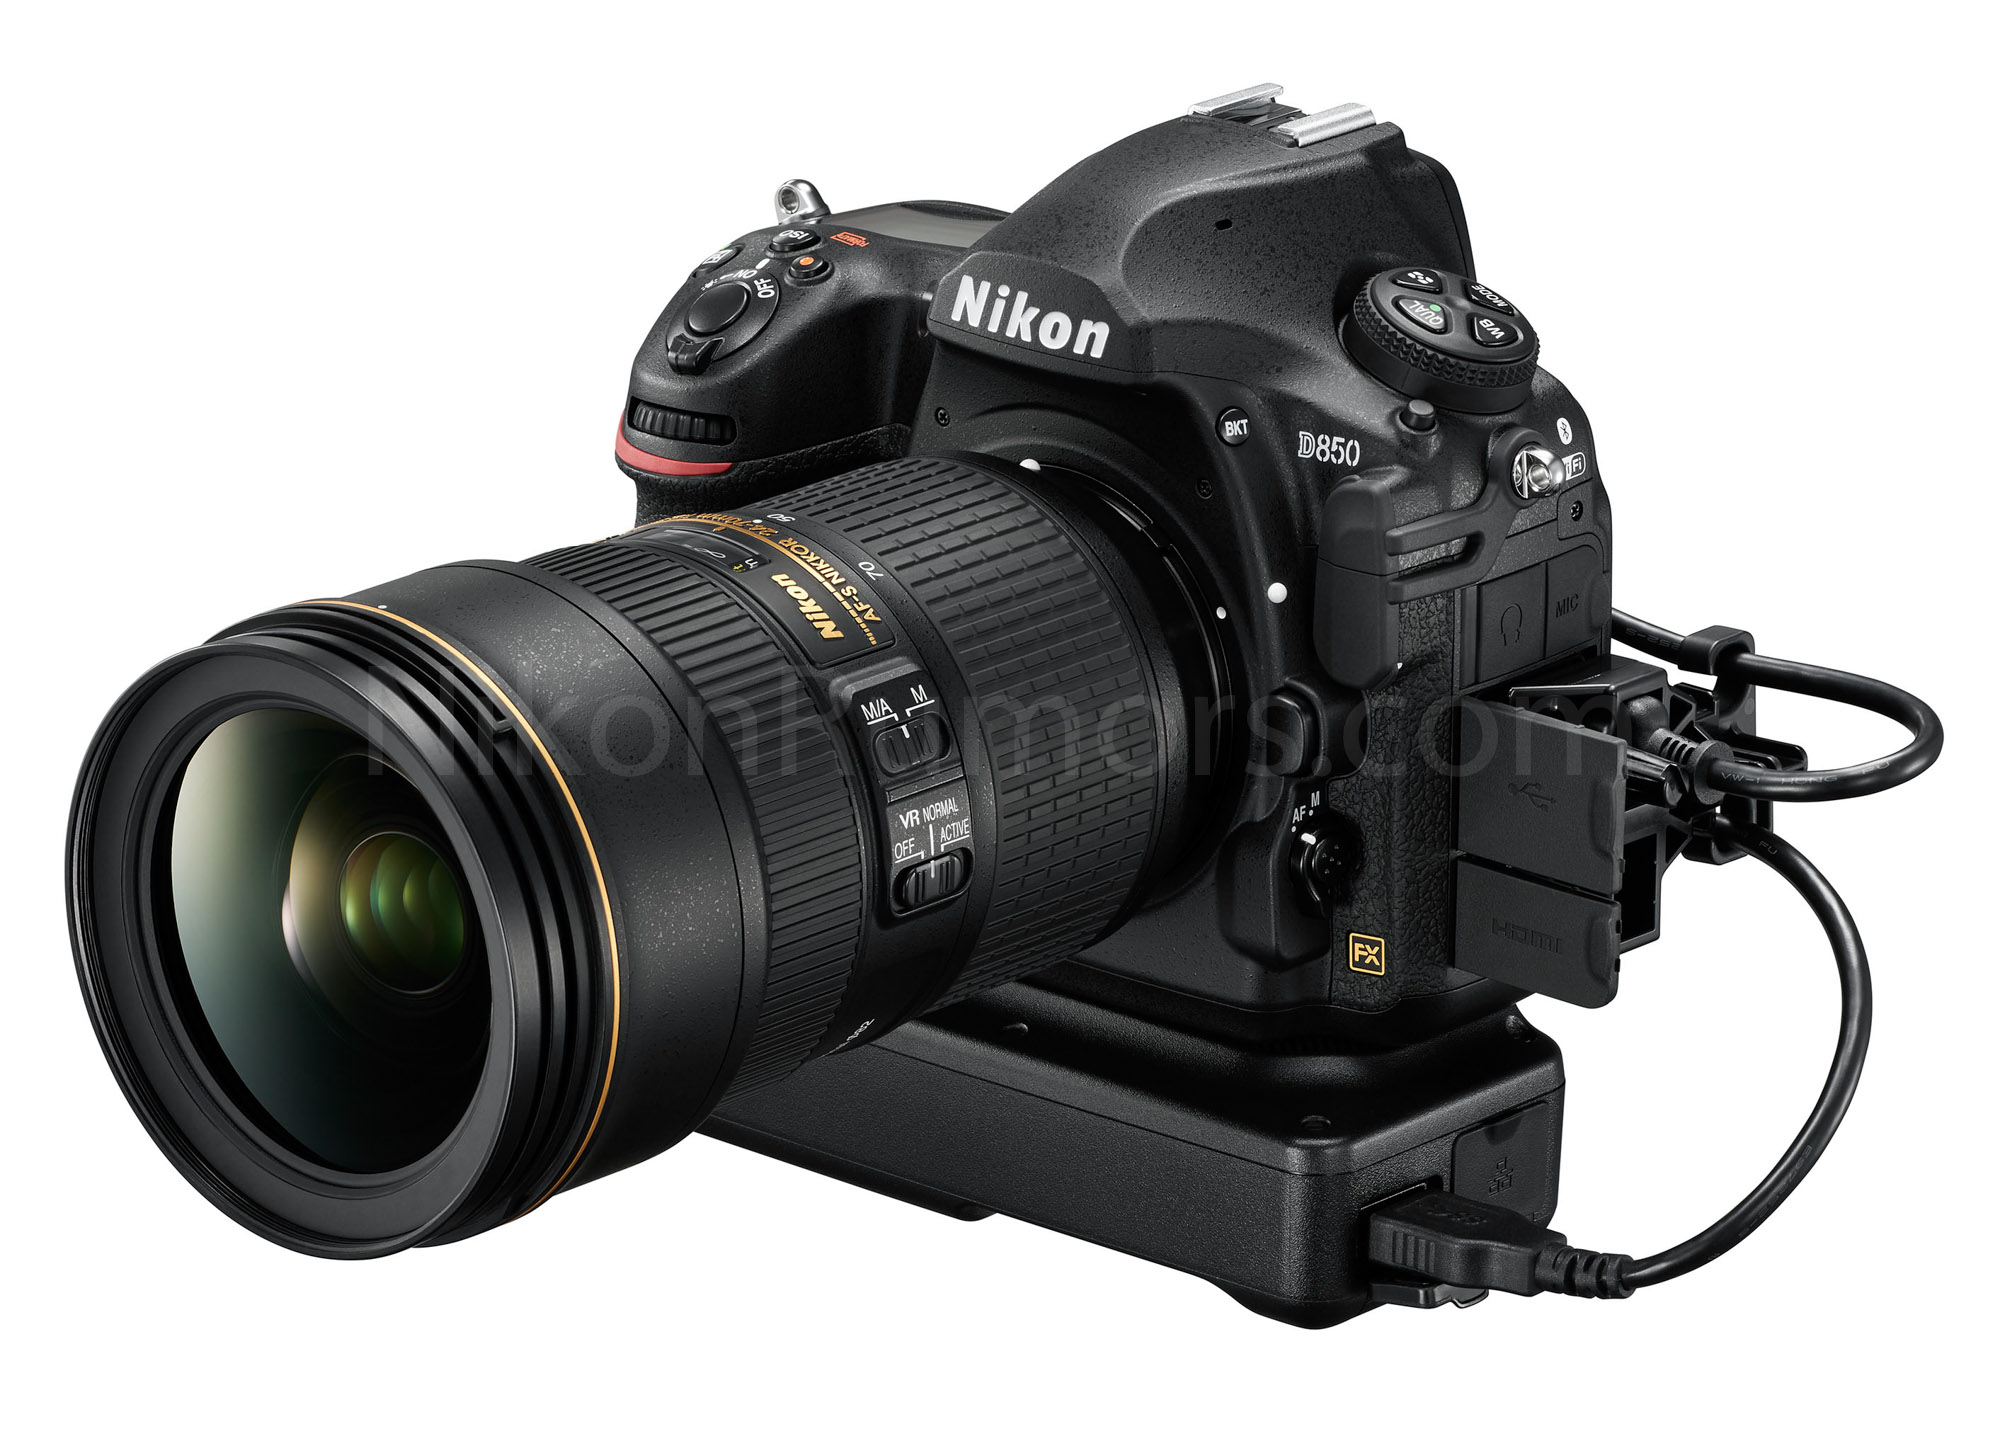 Magnificent Next Few Hours Refreshyour Browser Latest Nikon Nikon Officially Us Nikon Rumors Nikon D850 Availability June 2018 Nikon D850 Availability B H This Post Will Be Updated Multiple Times dpreview Nikon D850 Availability